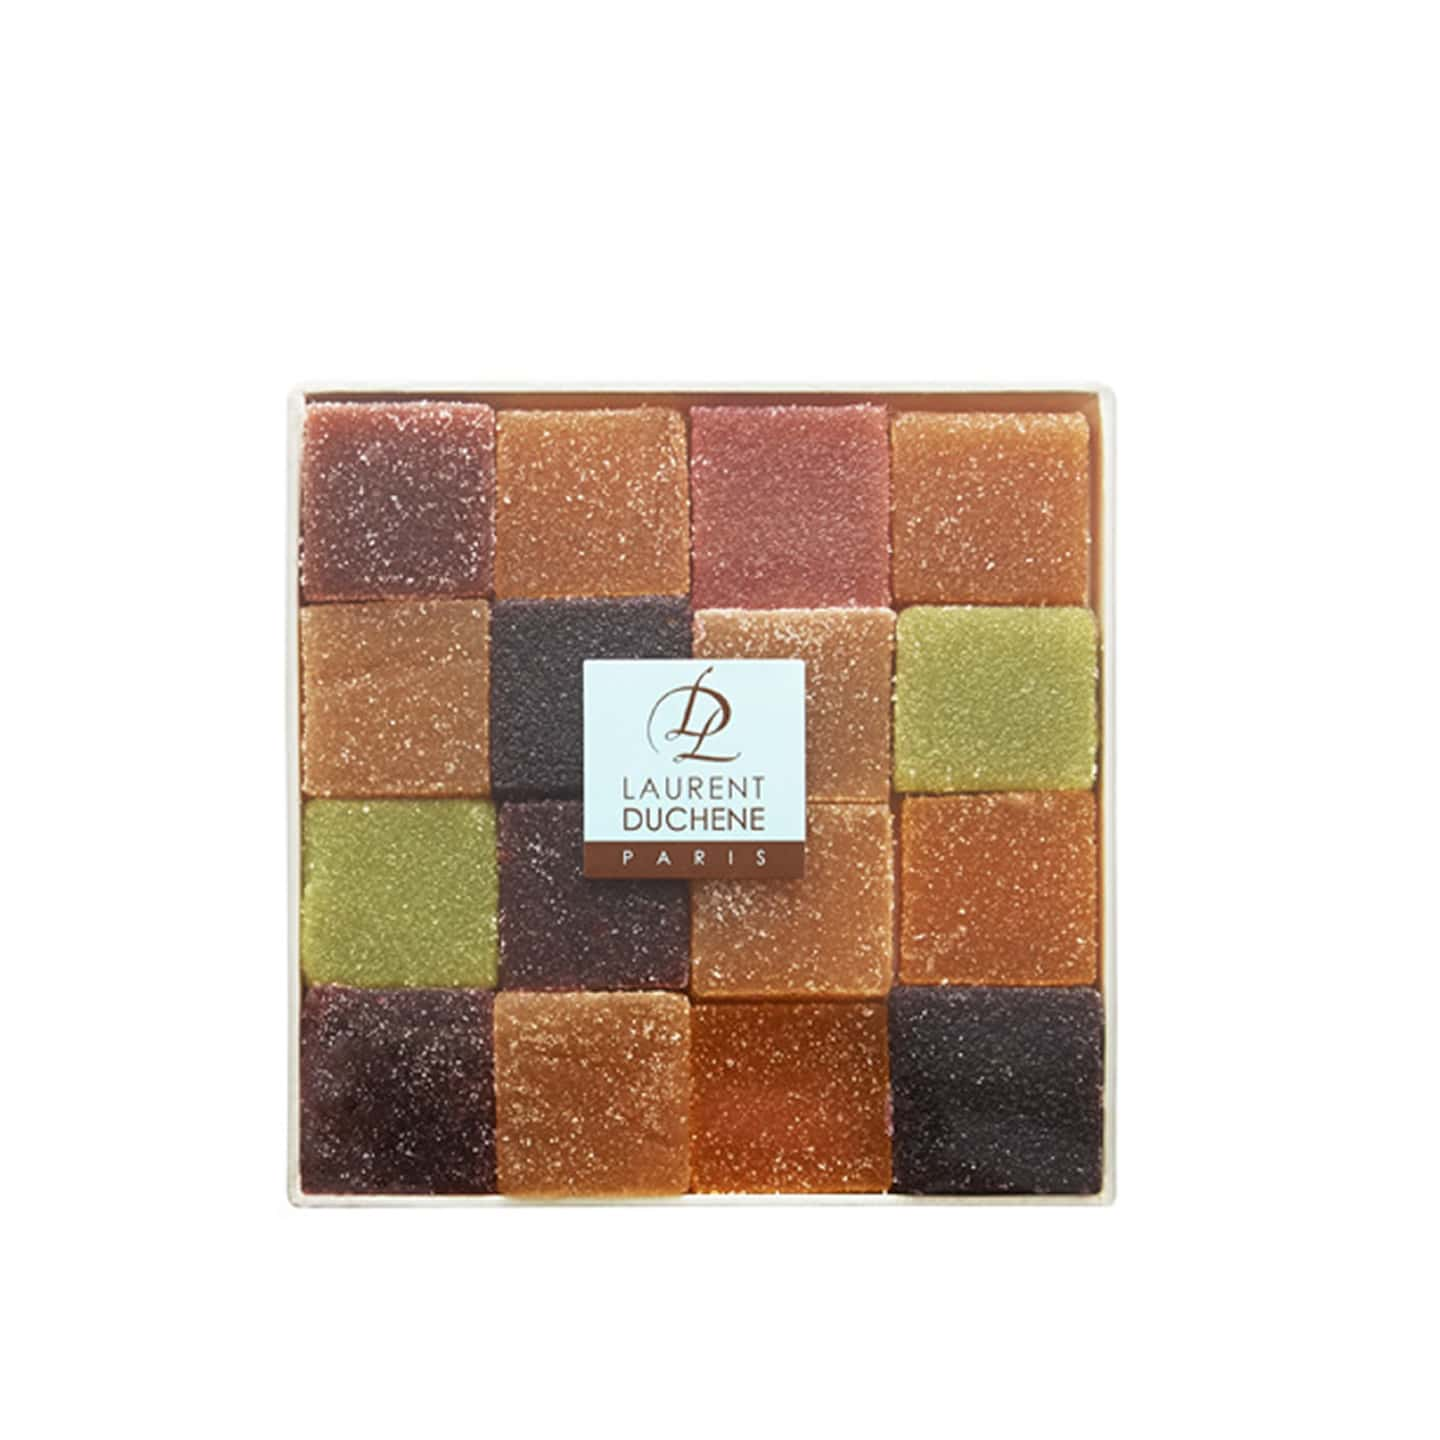 Pâte de fruits 280g